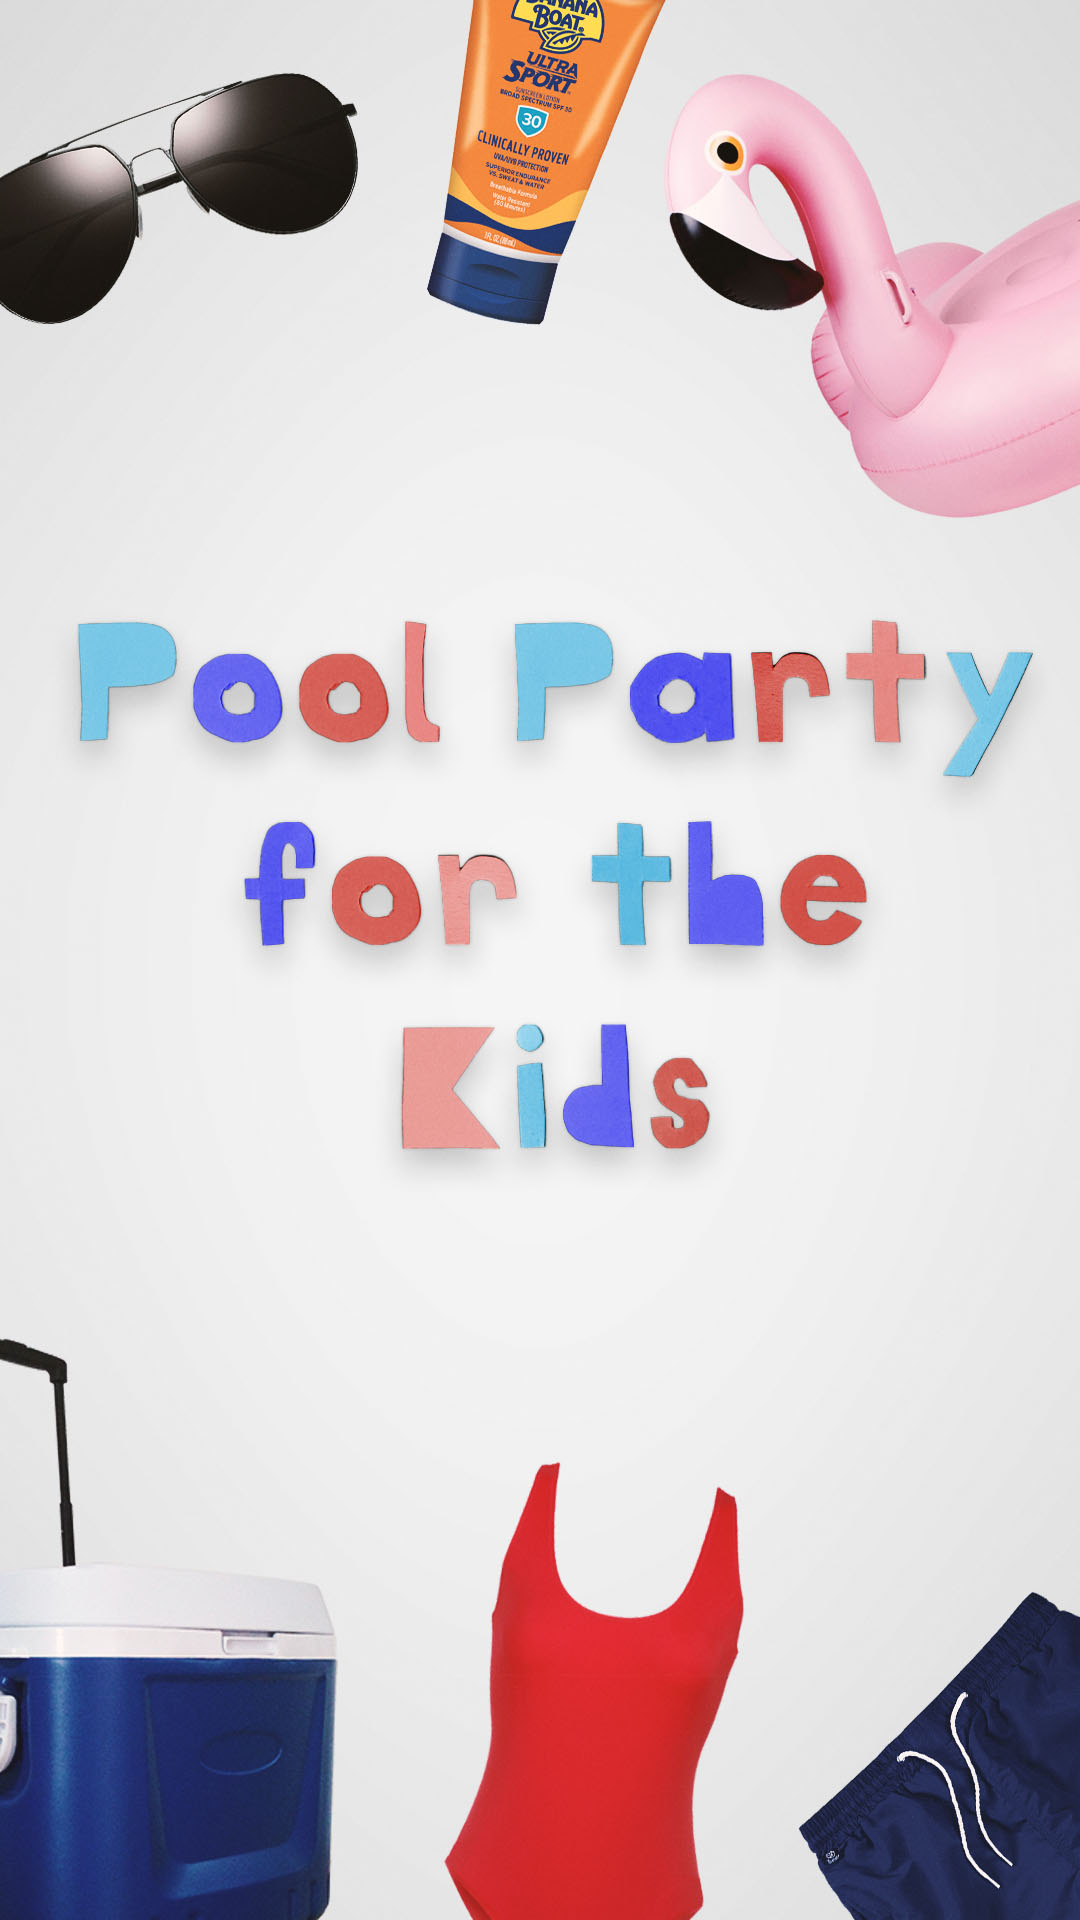 Next Level July 4th Social Media Posts1080x1920 Pool Party